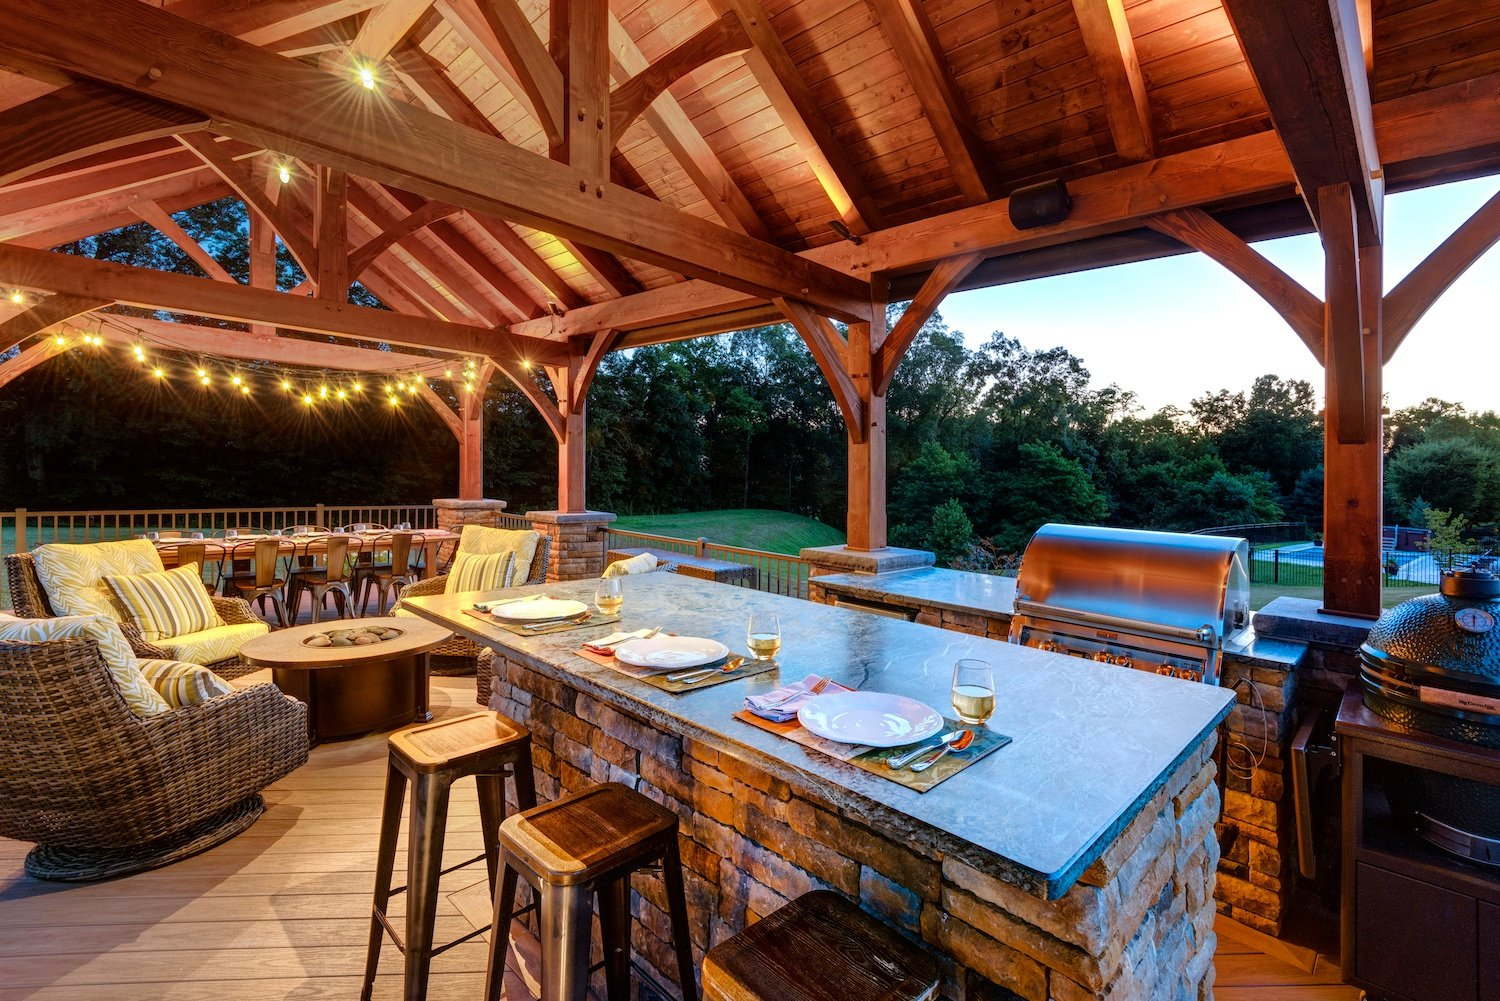 pavilion with outdoor kitchen built using landscaping phases